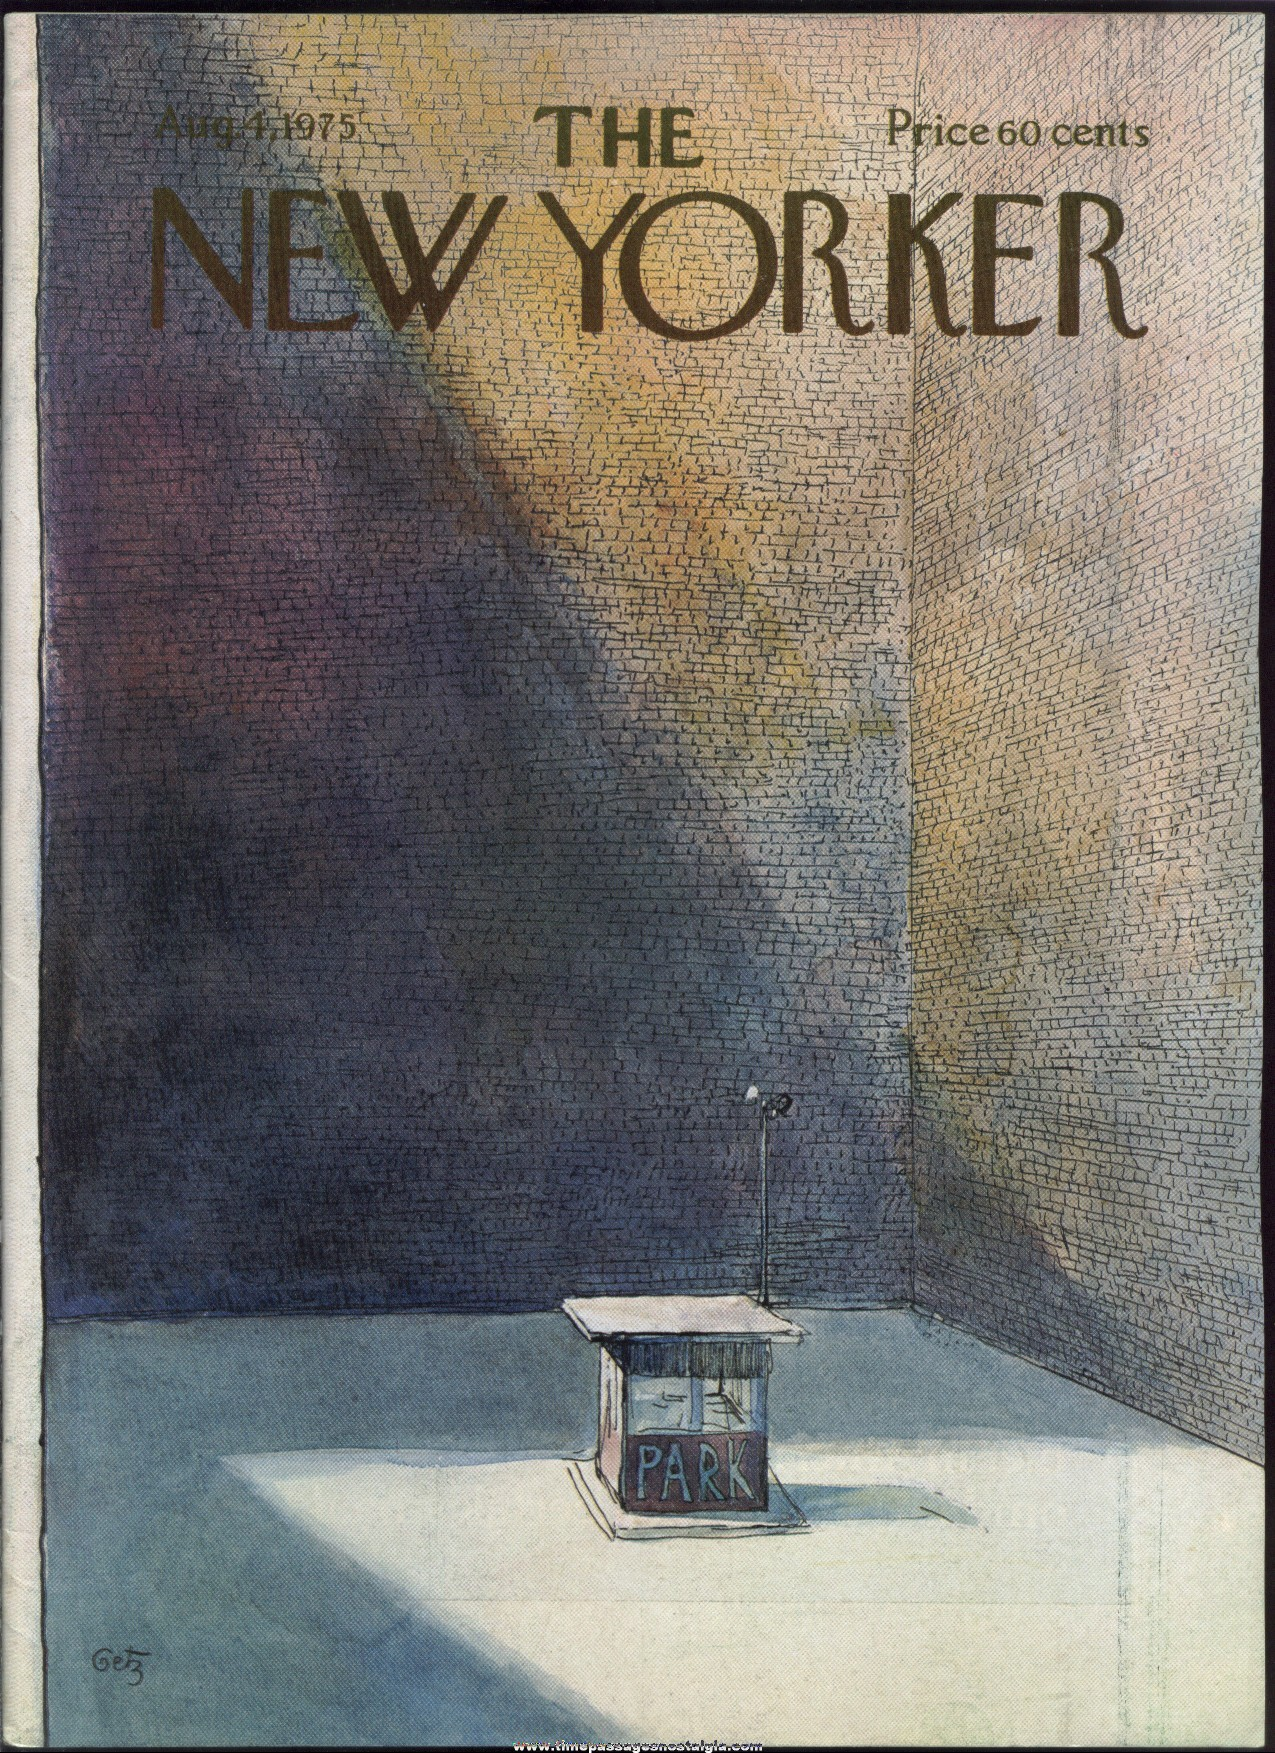 New Yorker Magazine - August 4, 1975 - Cover by Arthur Getz